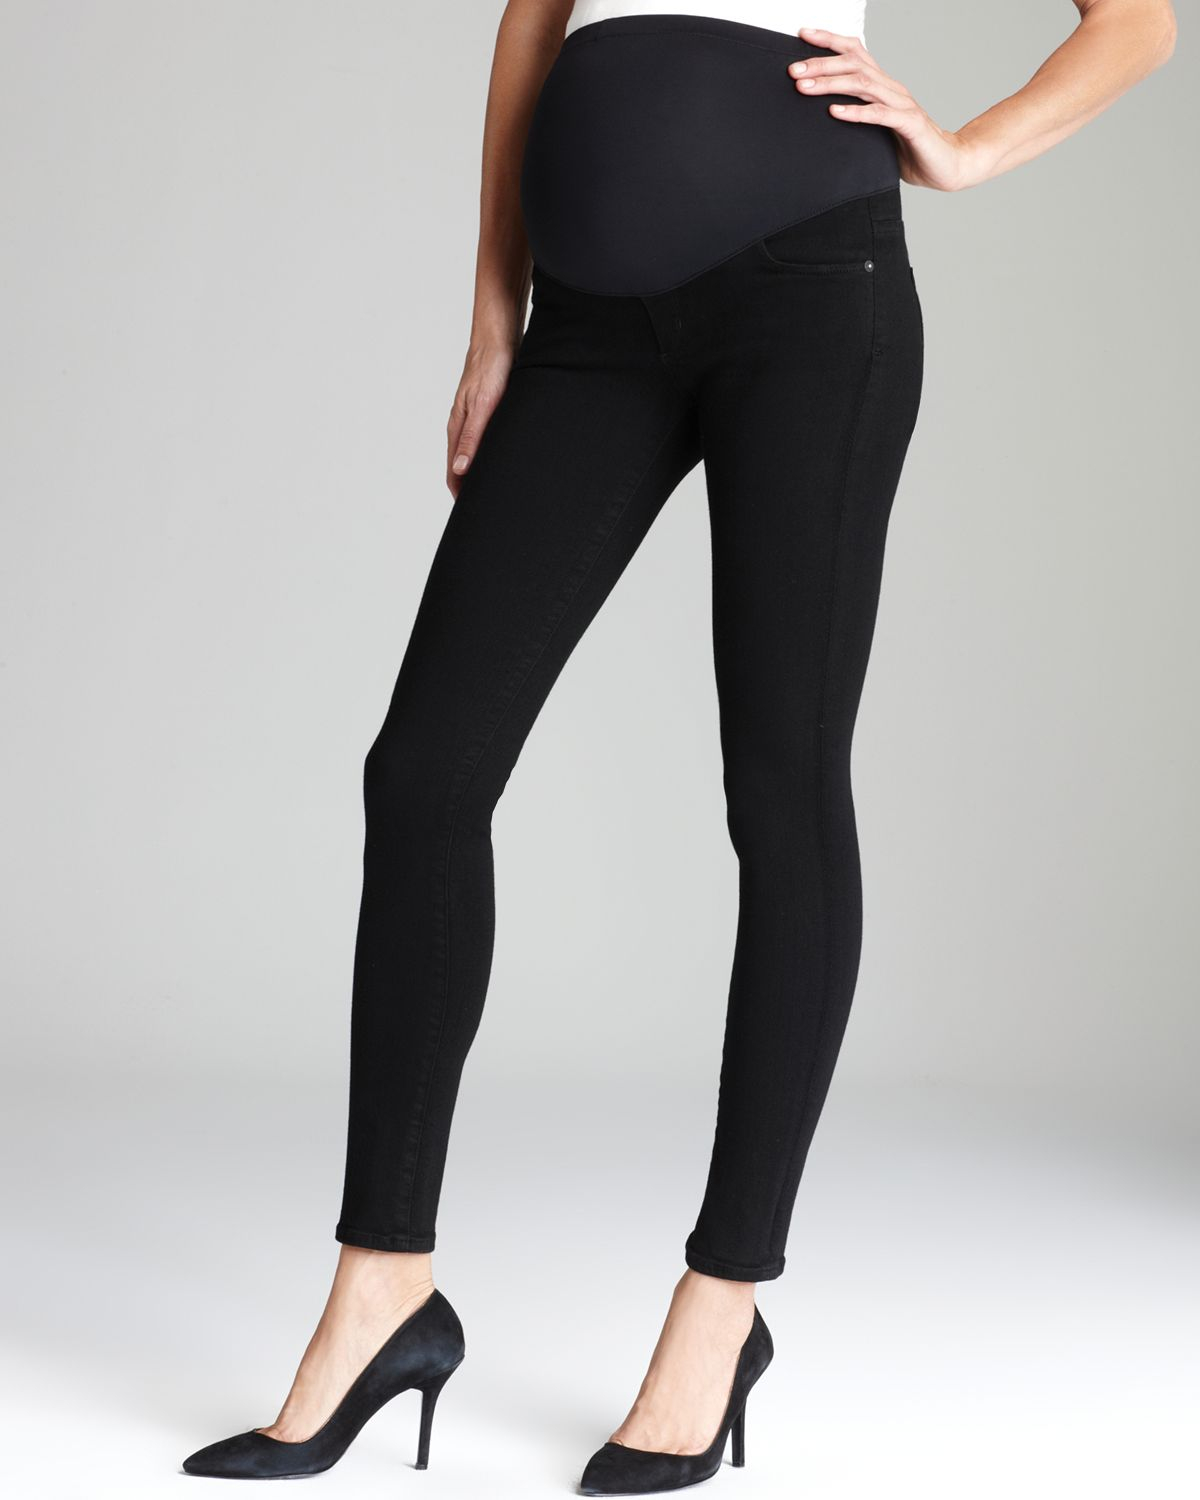 Best black skinny maternity jeans – Global fashion jeans collection